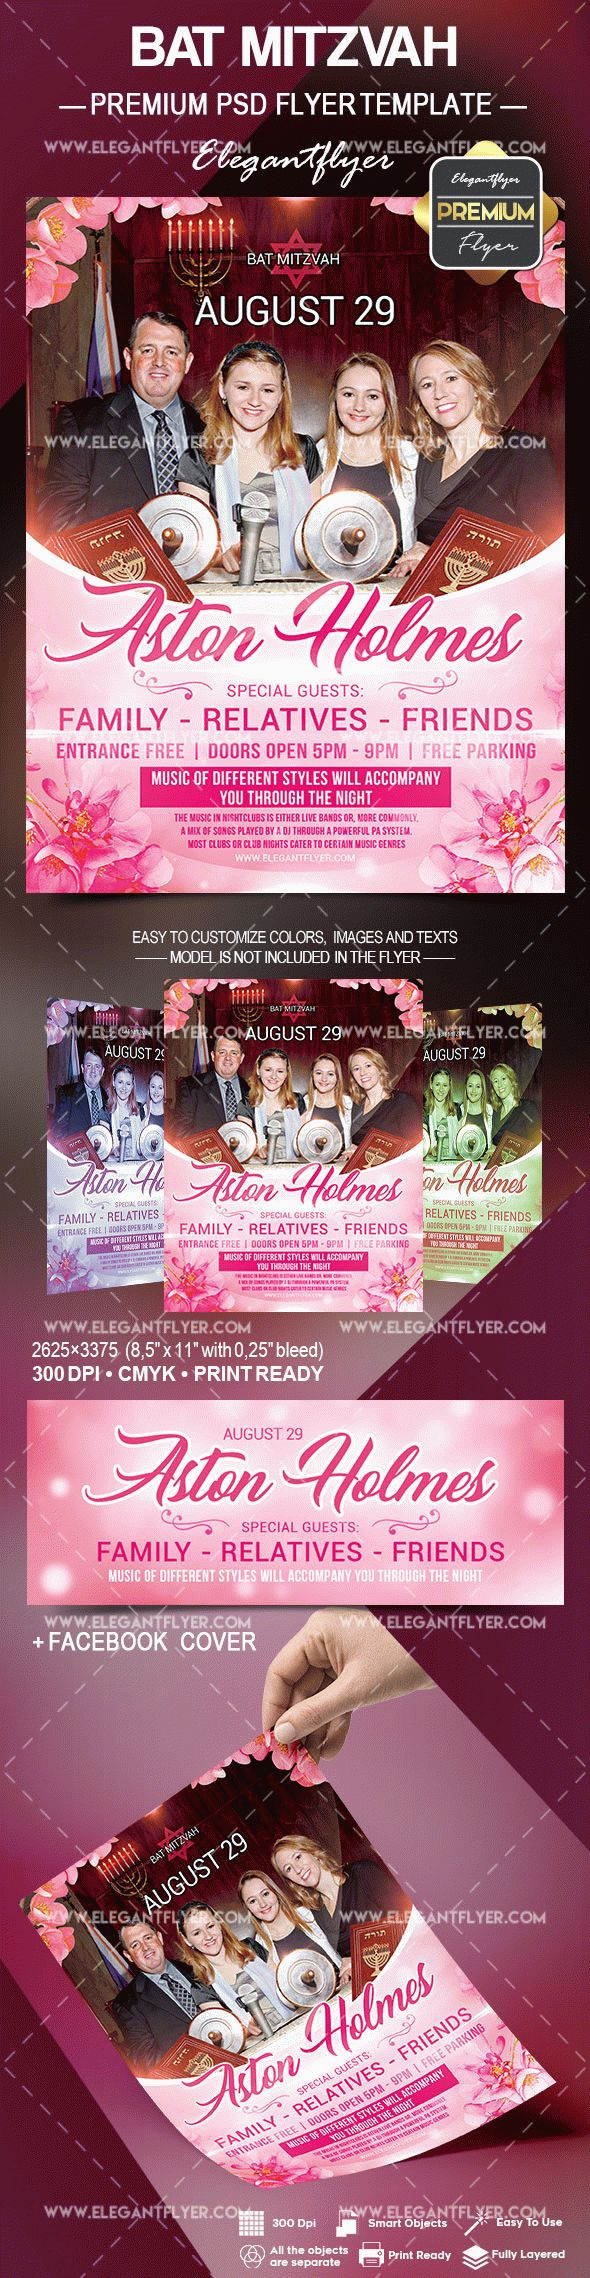 Bat Mitzvah – Flyer PSD Template